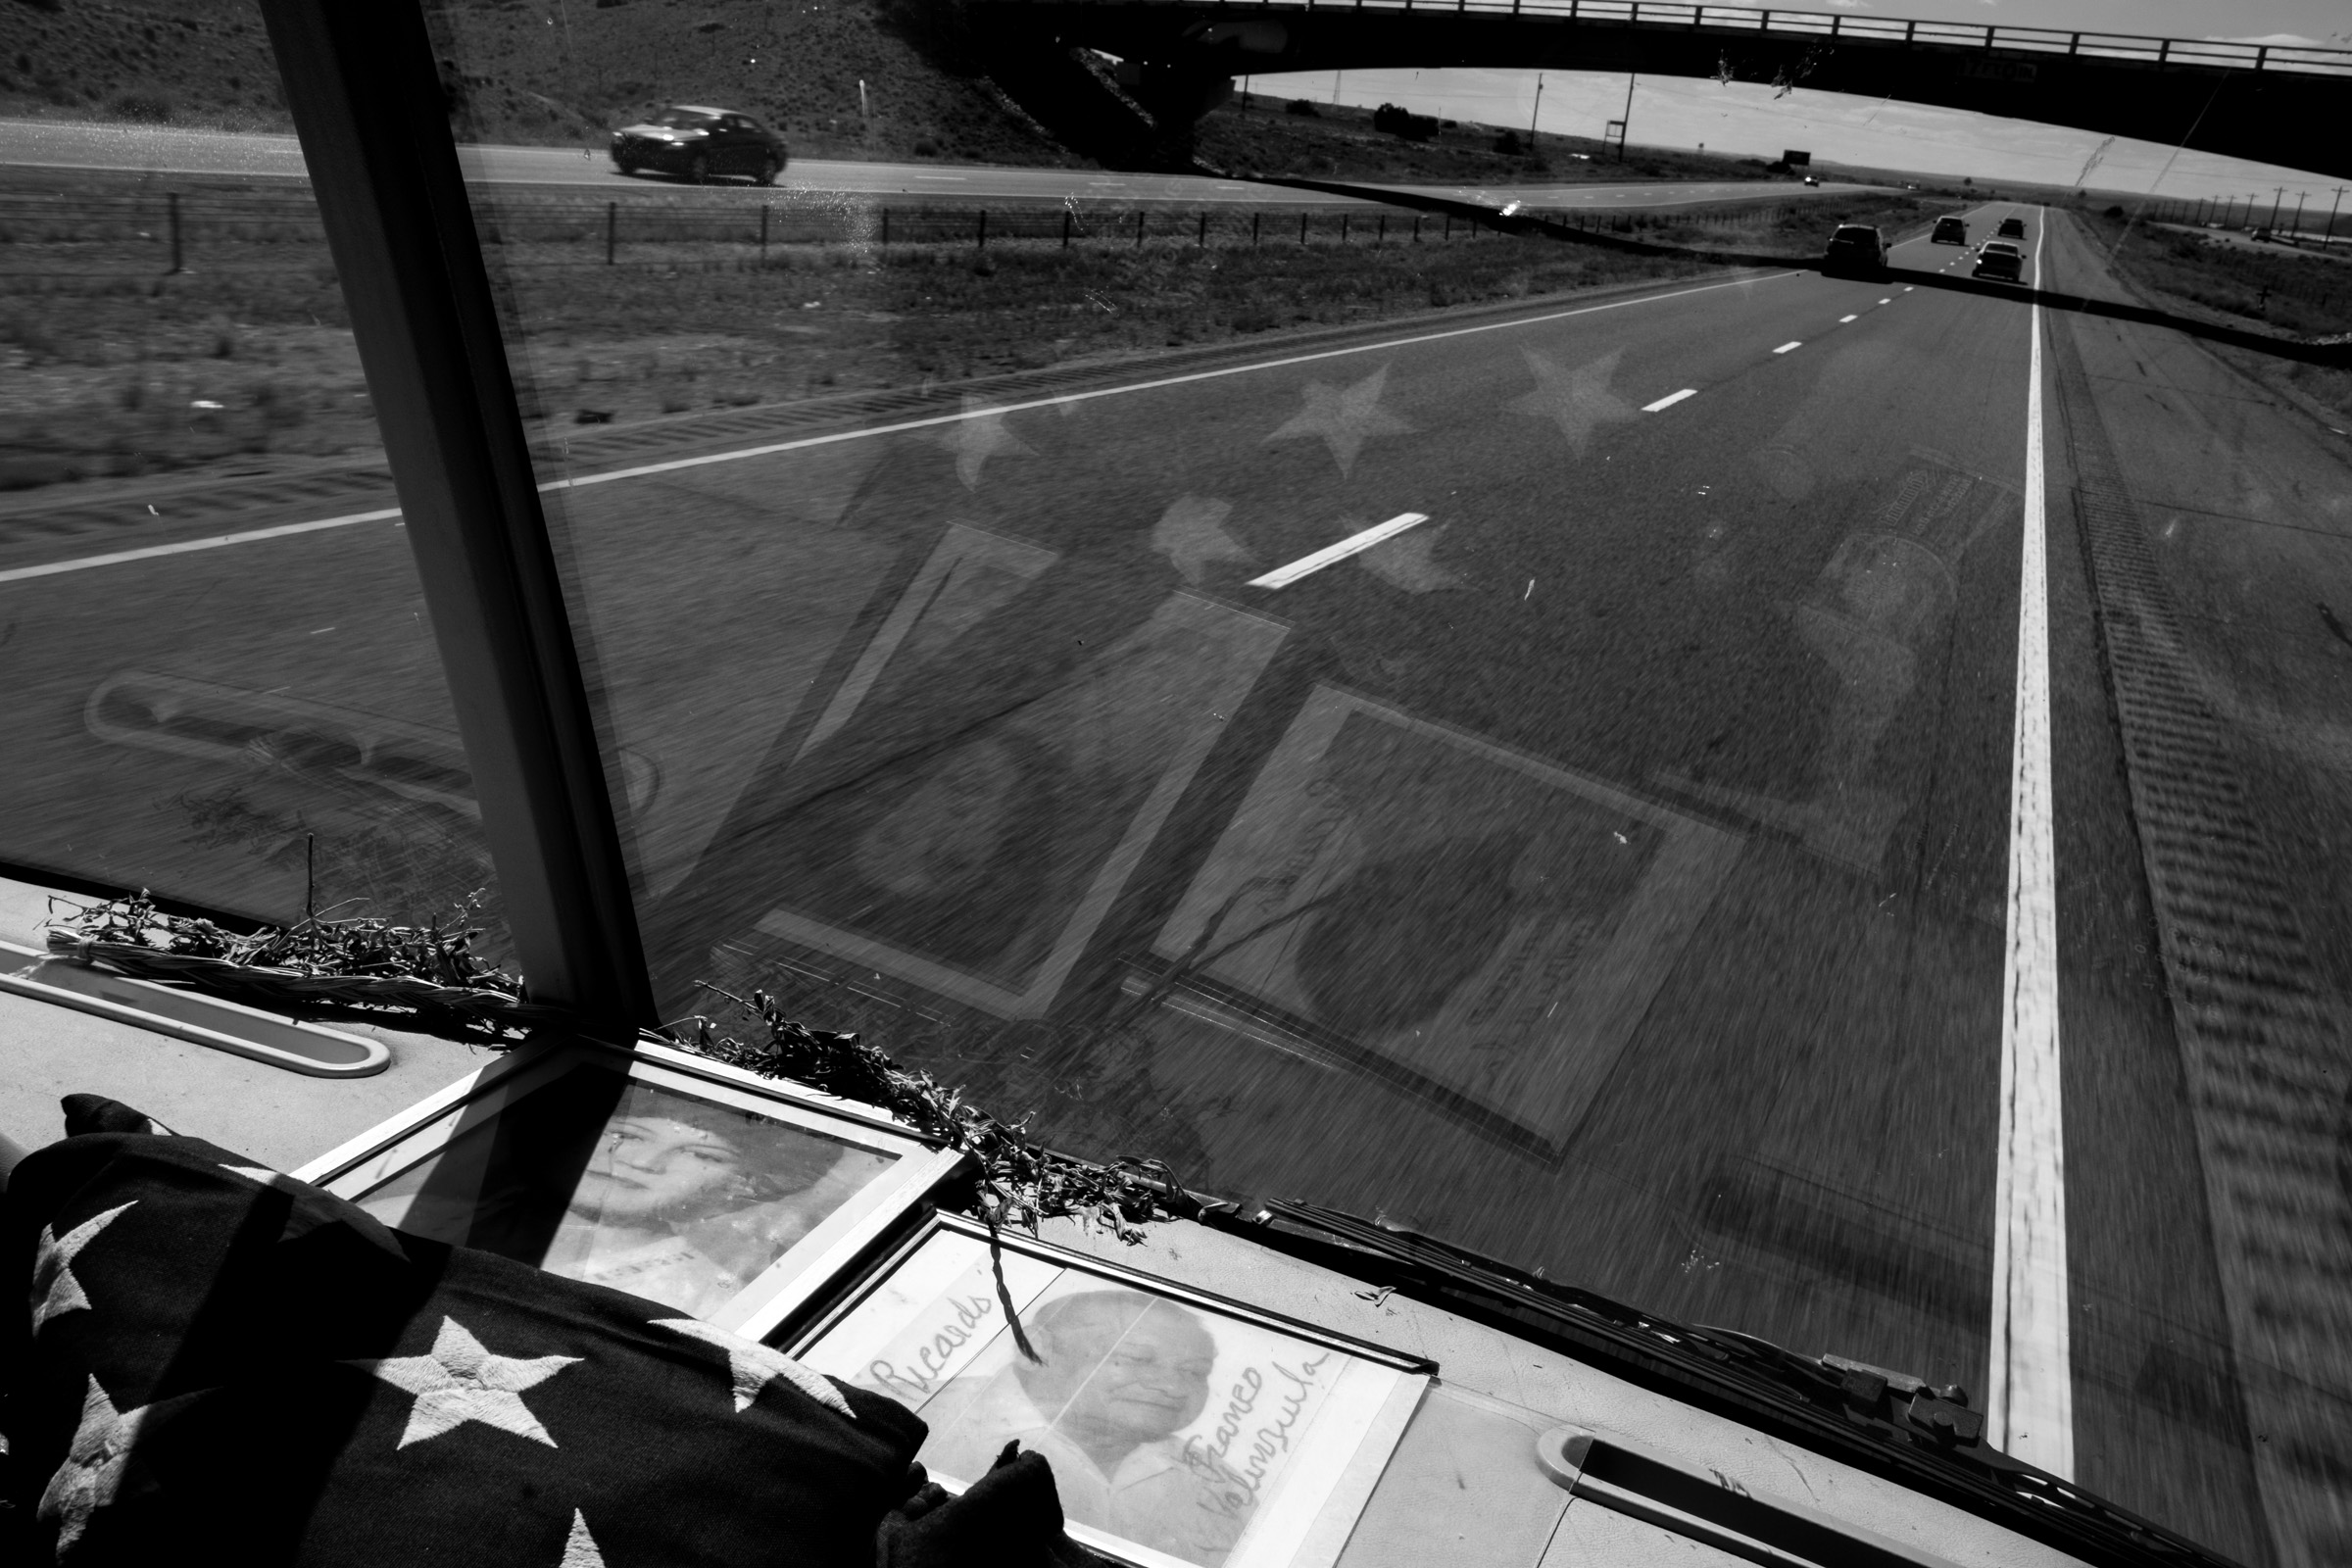 A framed photograph of the parents of U.S. Vietnam War veterans Manuel Valenzuela, 66, and Valente Valenzuela, 70, lays on the dashboard of their RV during a trip across America raising awareness for deported U.S. military veterans.   The Valenzuela brothers have been fighting deportation since 2009 for misdemeanor offenses which they completed sentences for. Their birth certificates classify them as resident aliens since their mother, a native from New Mexico, gave birth to them in México. Their deportation cases have been lingering in the courts. They might qualify as U.S. citizens as a result of their mother's citizenship status. (Photo by Joel Angel Juárez/GroundTruth)